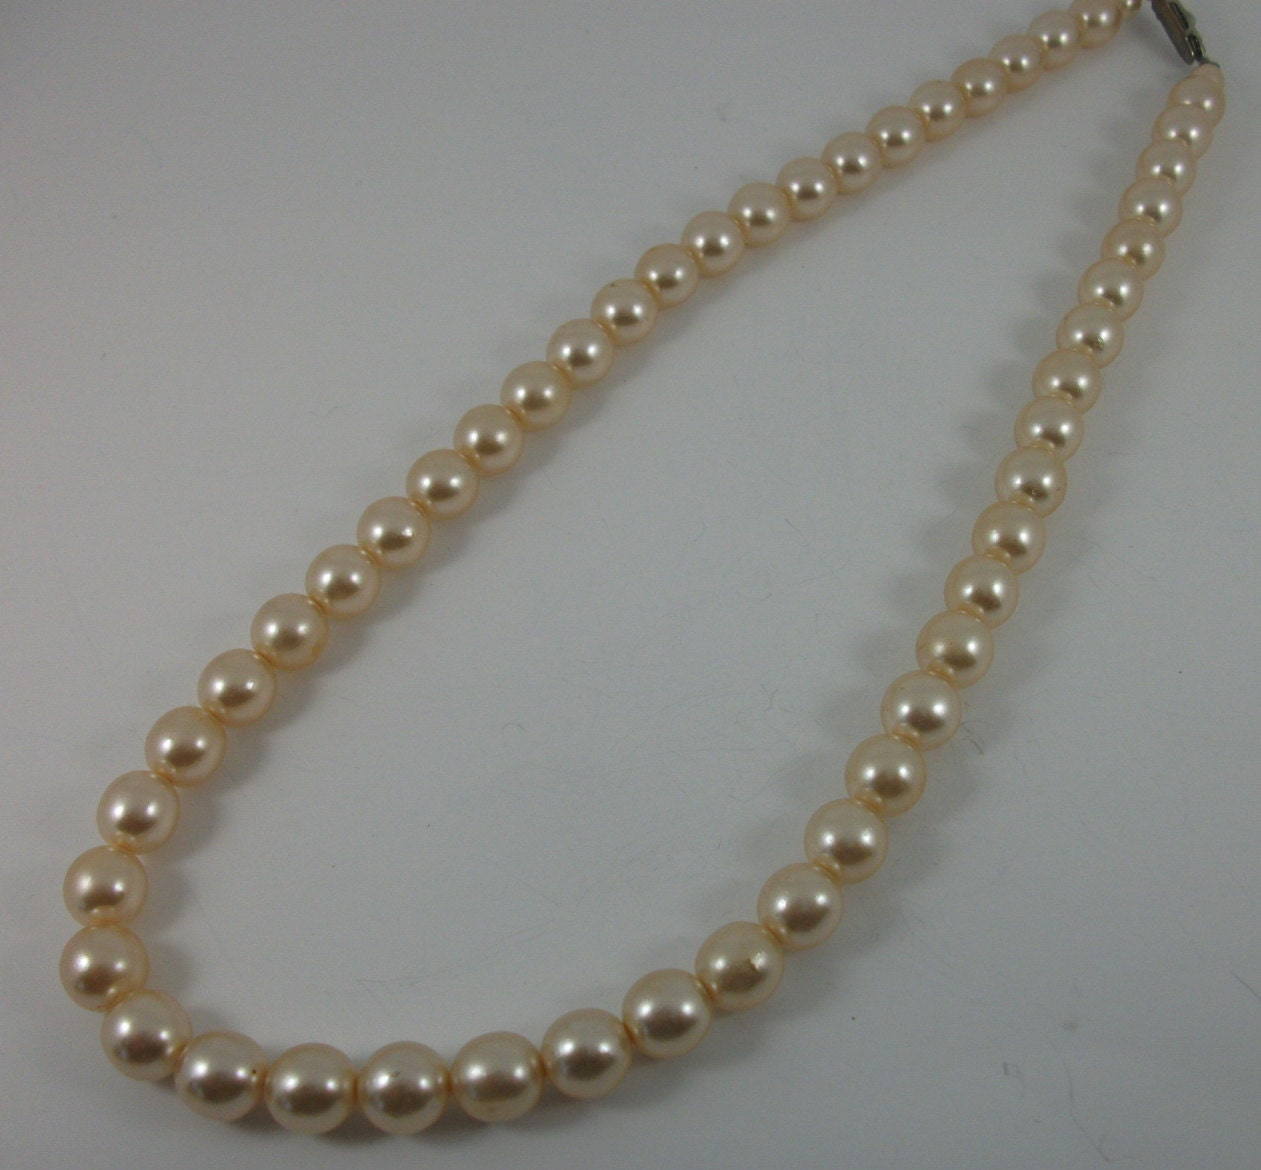 Pearl Necklace Clasp: Vintage Pearl Necklace Rhinestone Clasp Ivory Pearls Short